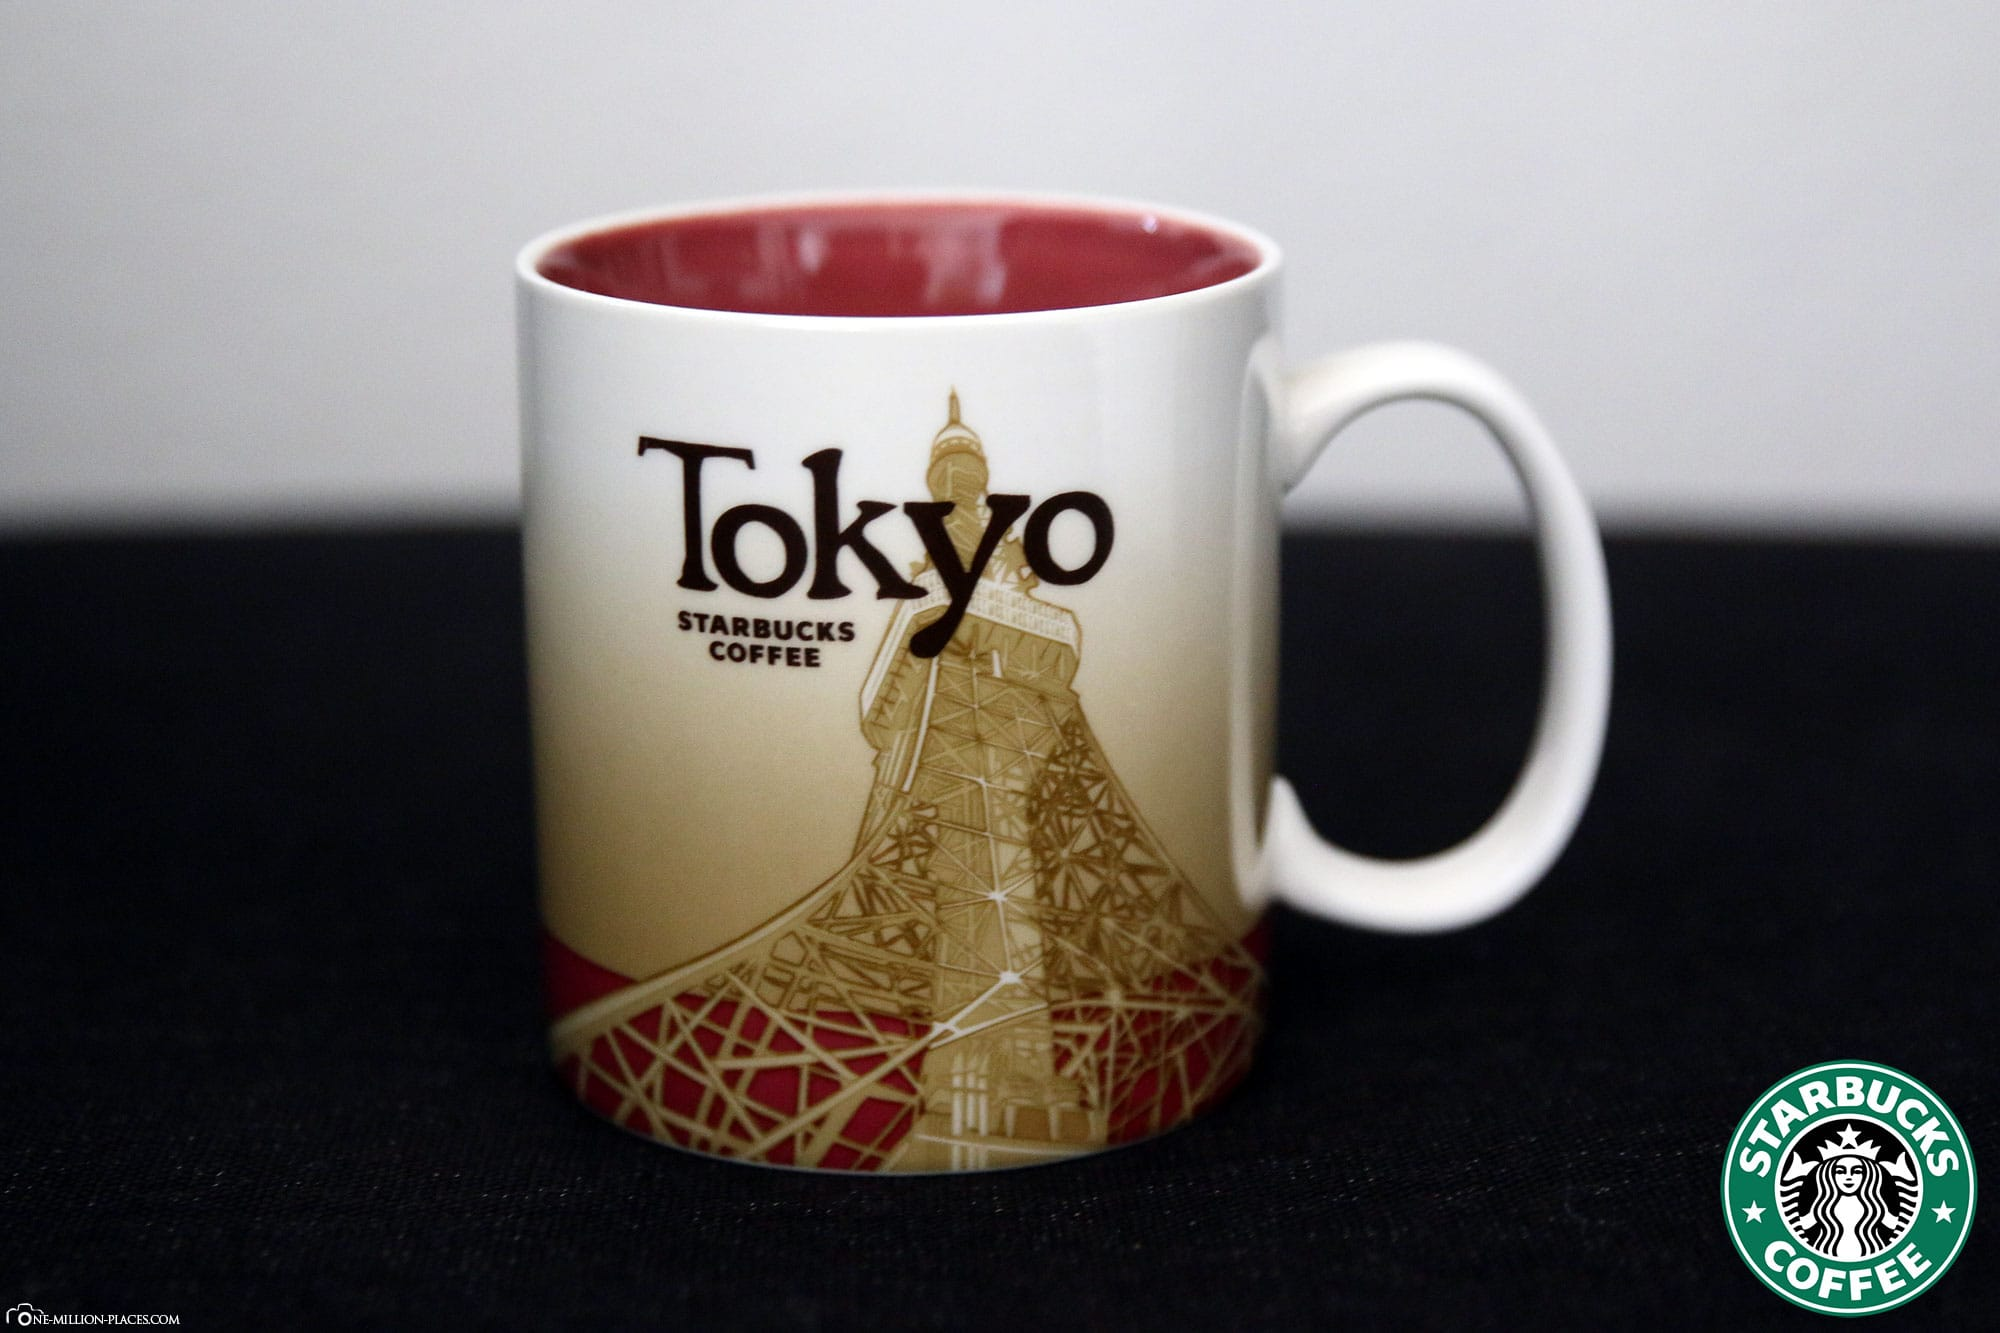 Tokyo, Starbucks Tasse, Global Icon Serie, City Mugs, Sammlung, Japan, Reisebericht